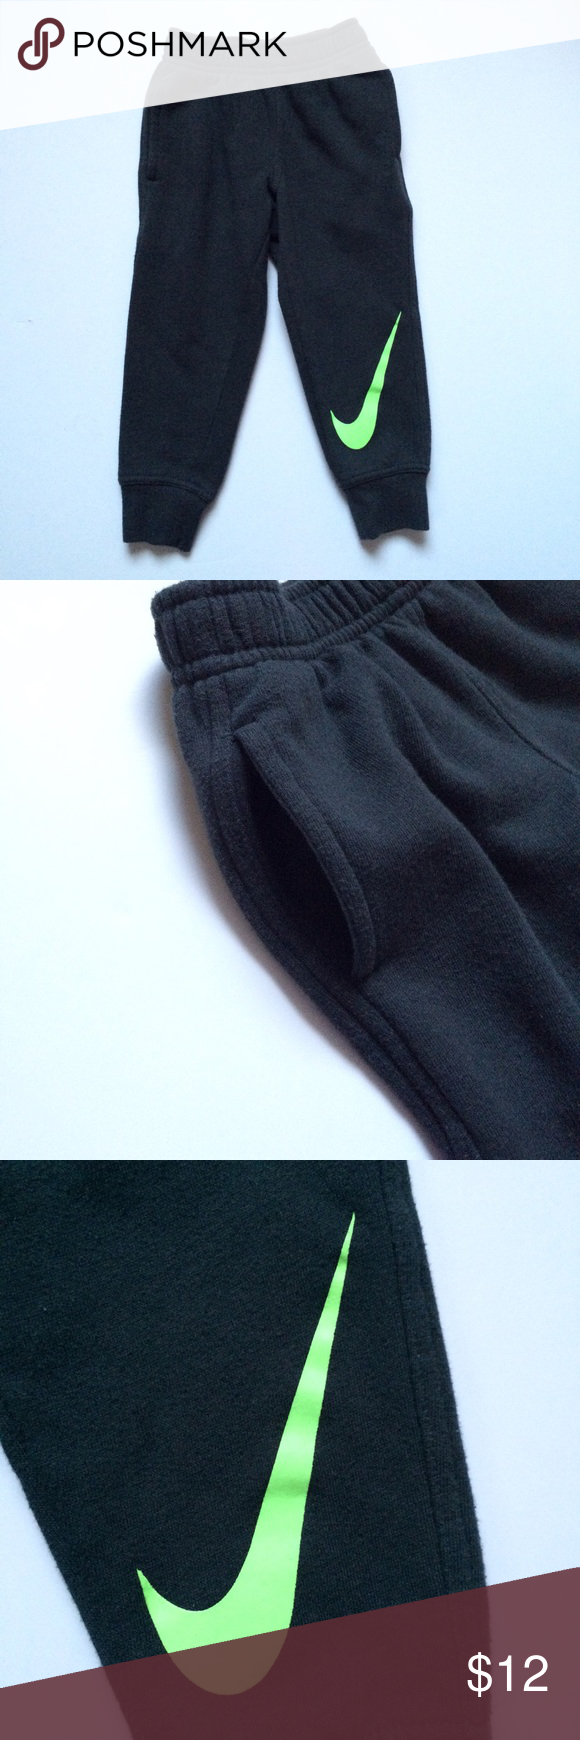 Nike Sweats Cute sweats/joggers! No cracking in logo! Dark gray with bright green logo. Minimal wash wear. Size is a 3T but run small. Best fit is 2T. Bottoms